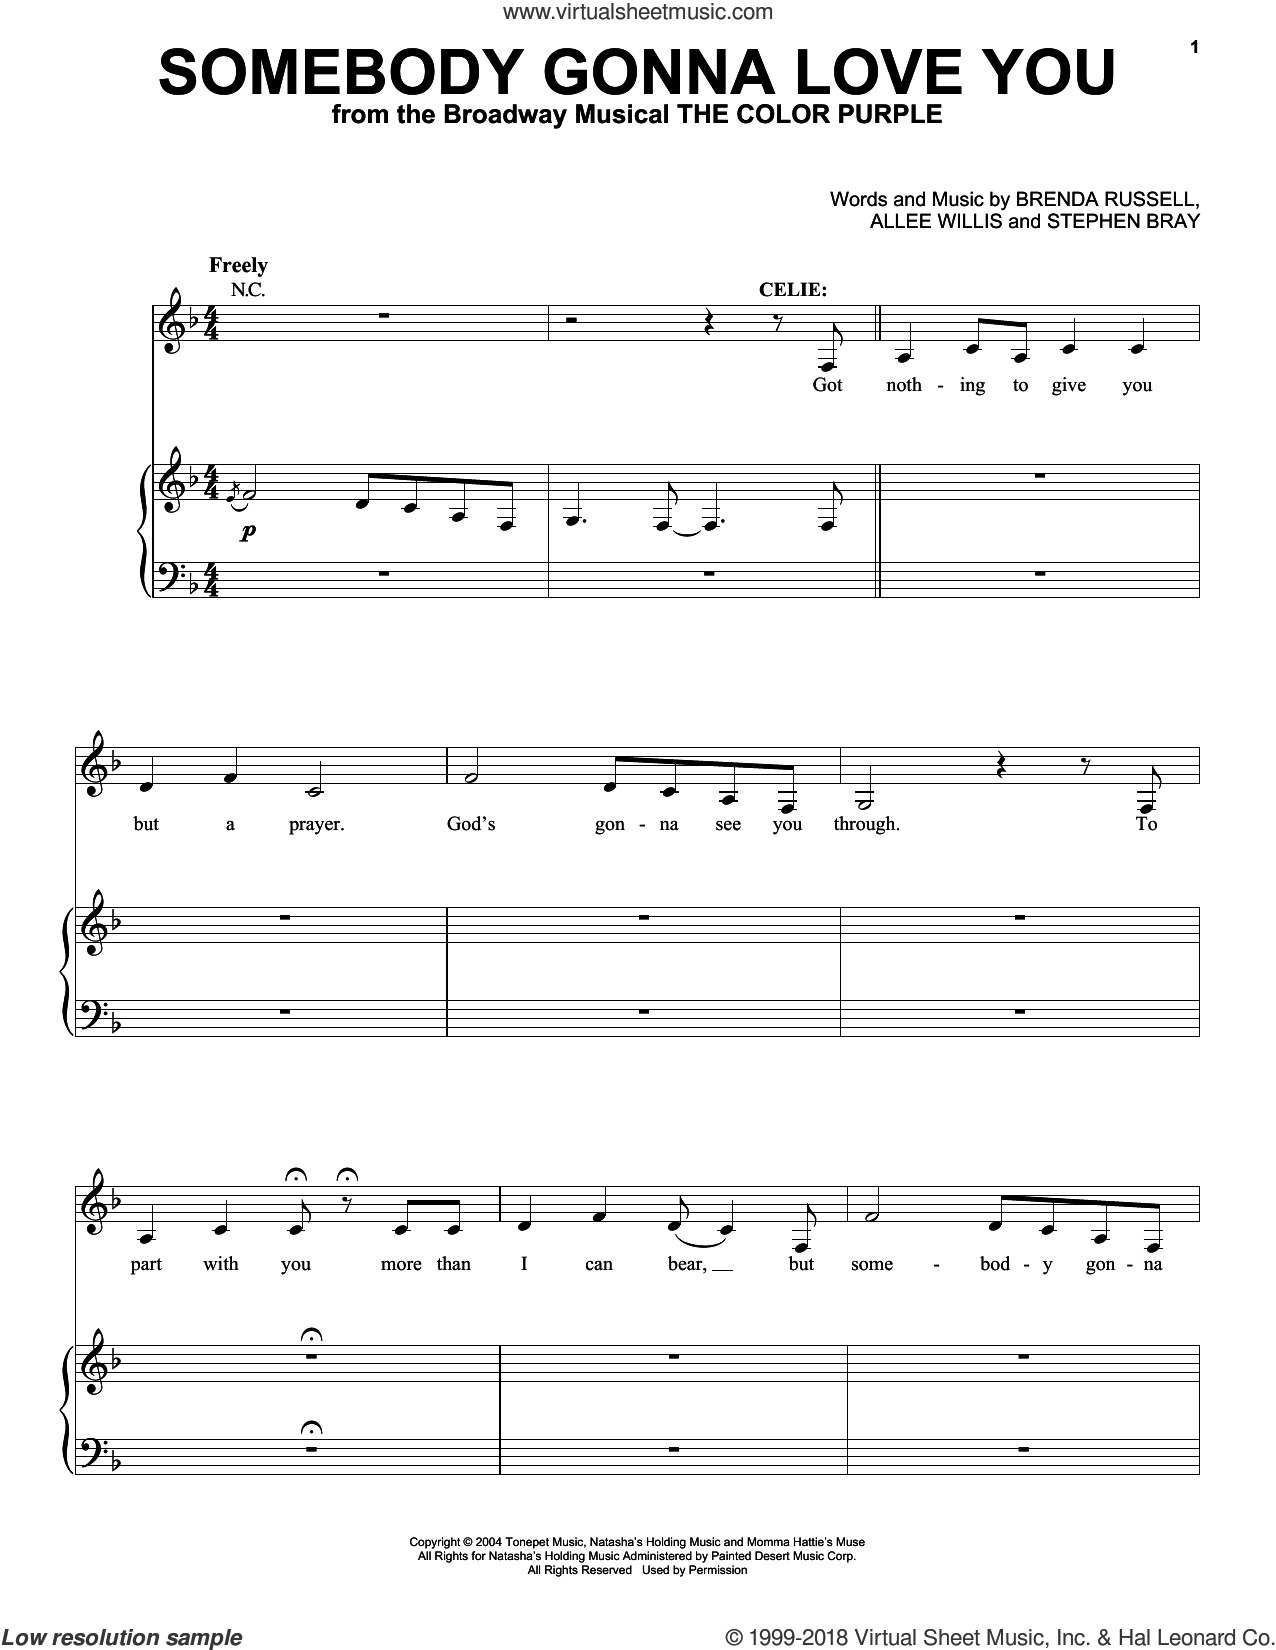 Somebody Gonna Love You sheet music for voice and piano by Stephen Bray, Allee Willis and Brenda Russell. Score Image Preview.